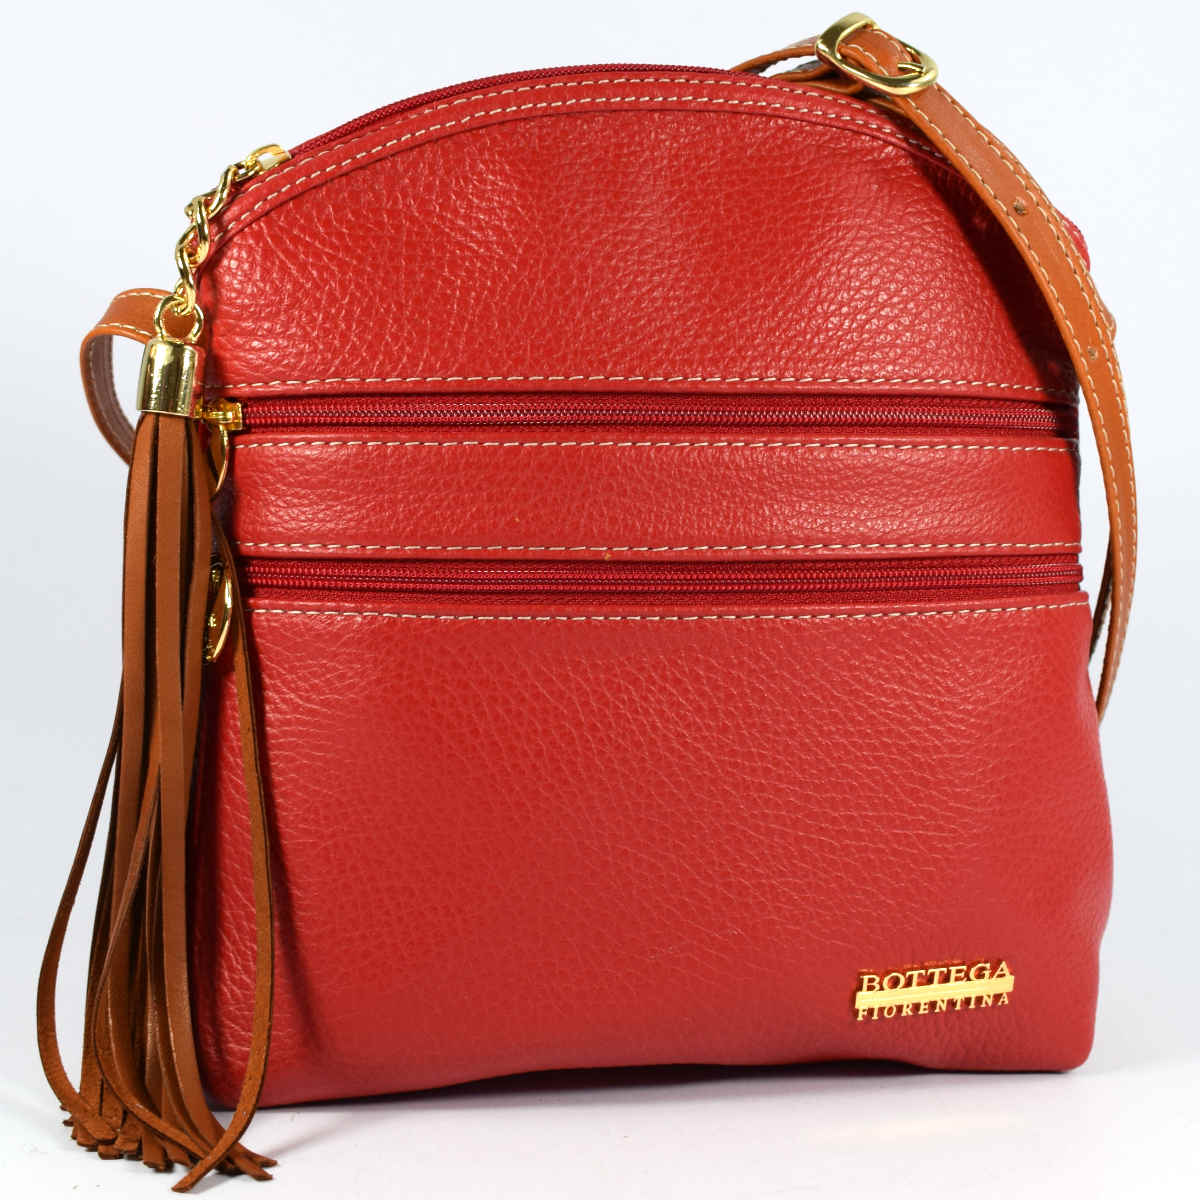 1963 ROUNDED SHOULDER BAG by Bottega Fiorentina